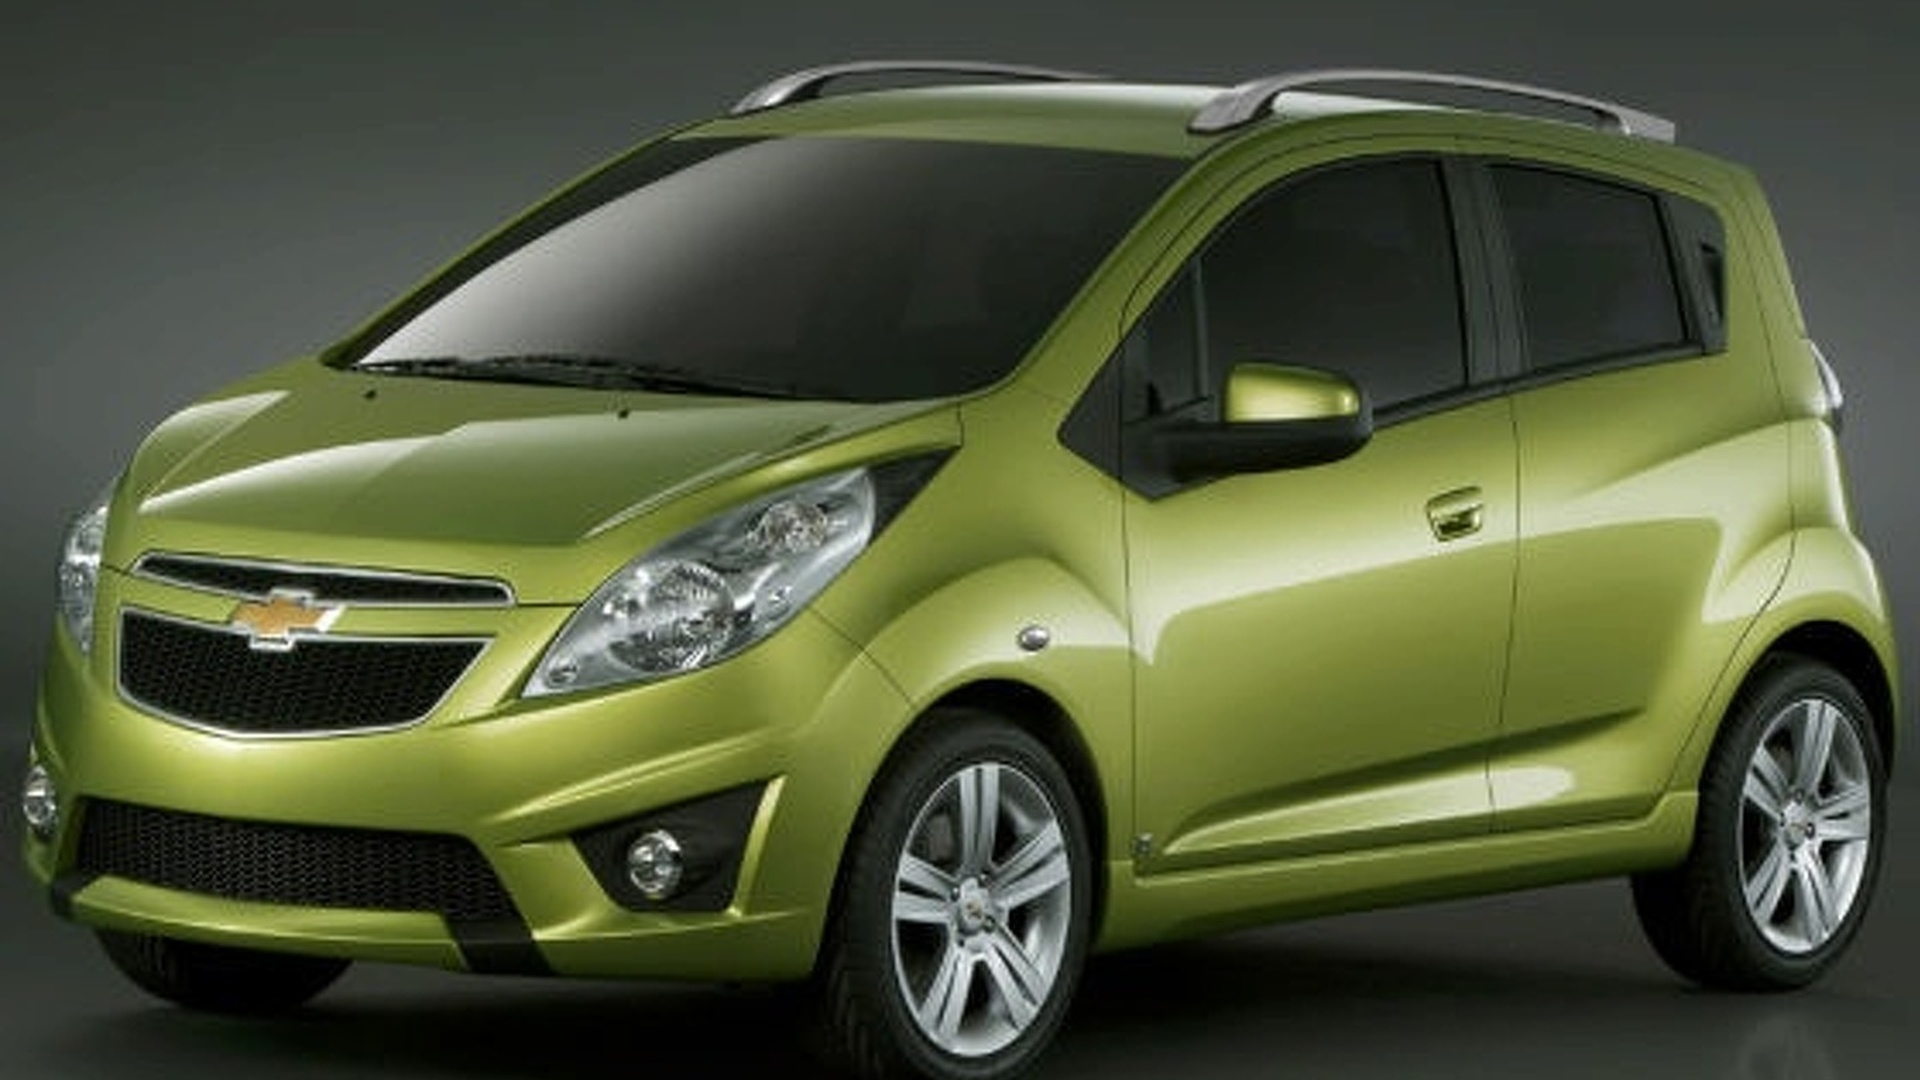 2010 Chevy Spark Photo Leaked Aka Beat Concept 2009